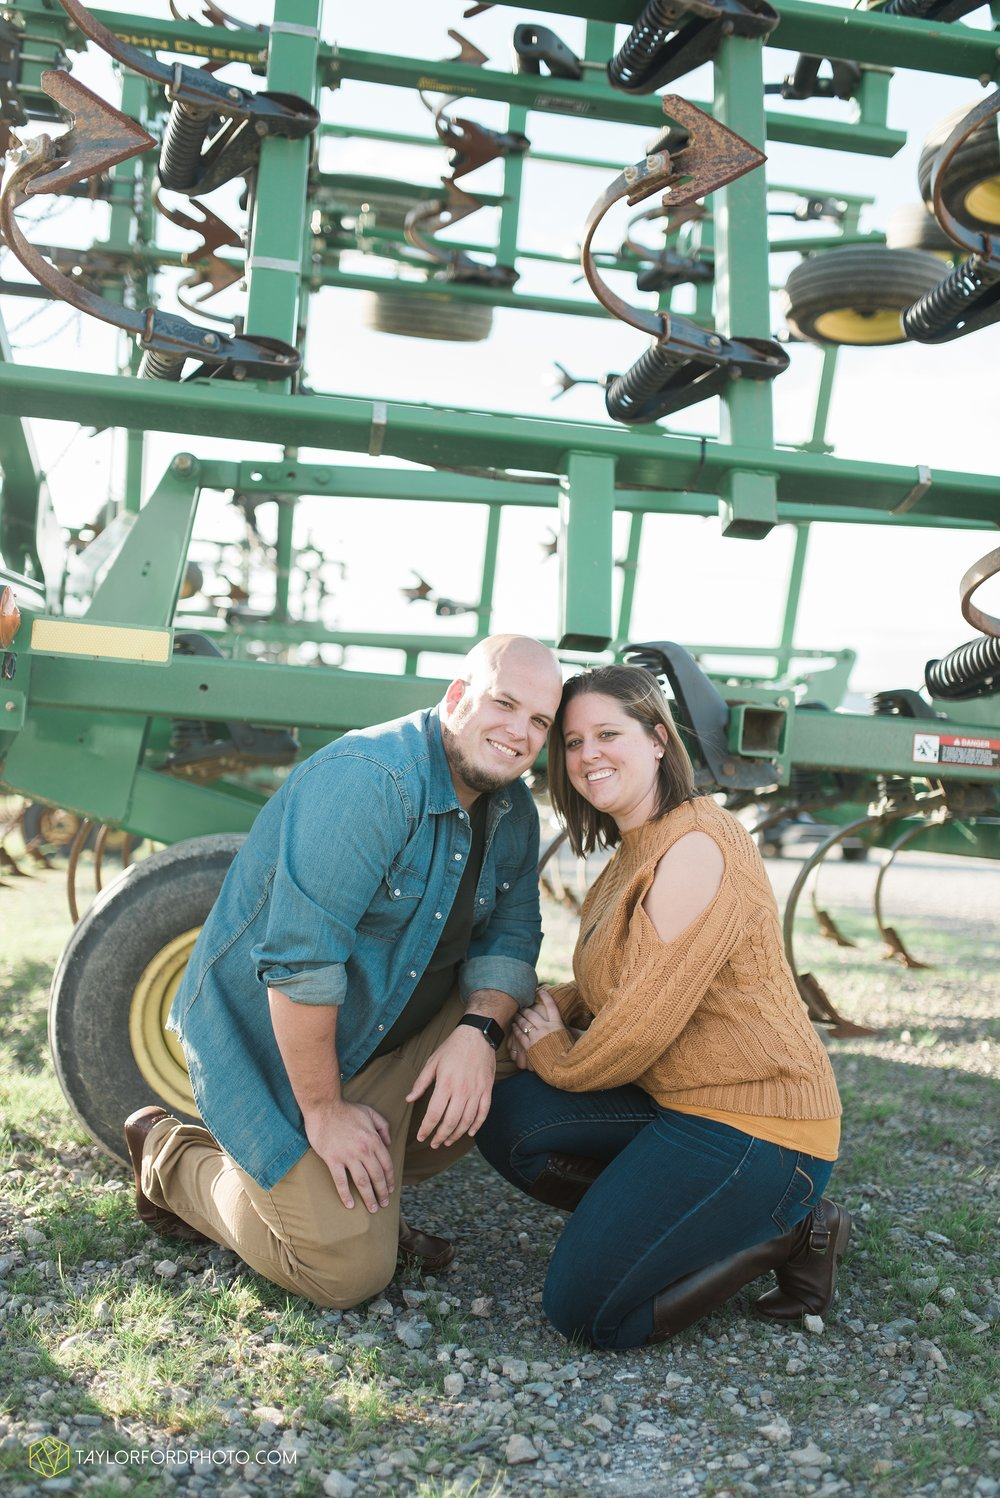 van-wert-ohio-engagement-wedding-photographer-Taylor-Ford-Photography-fall-farm-nature_4144.jpg